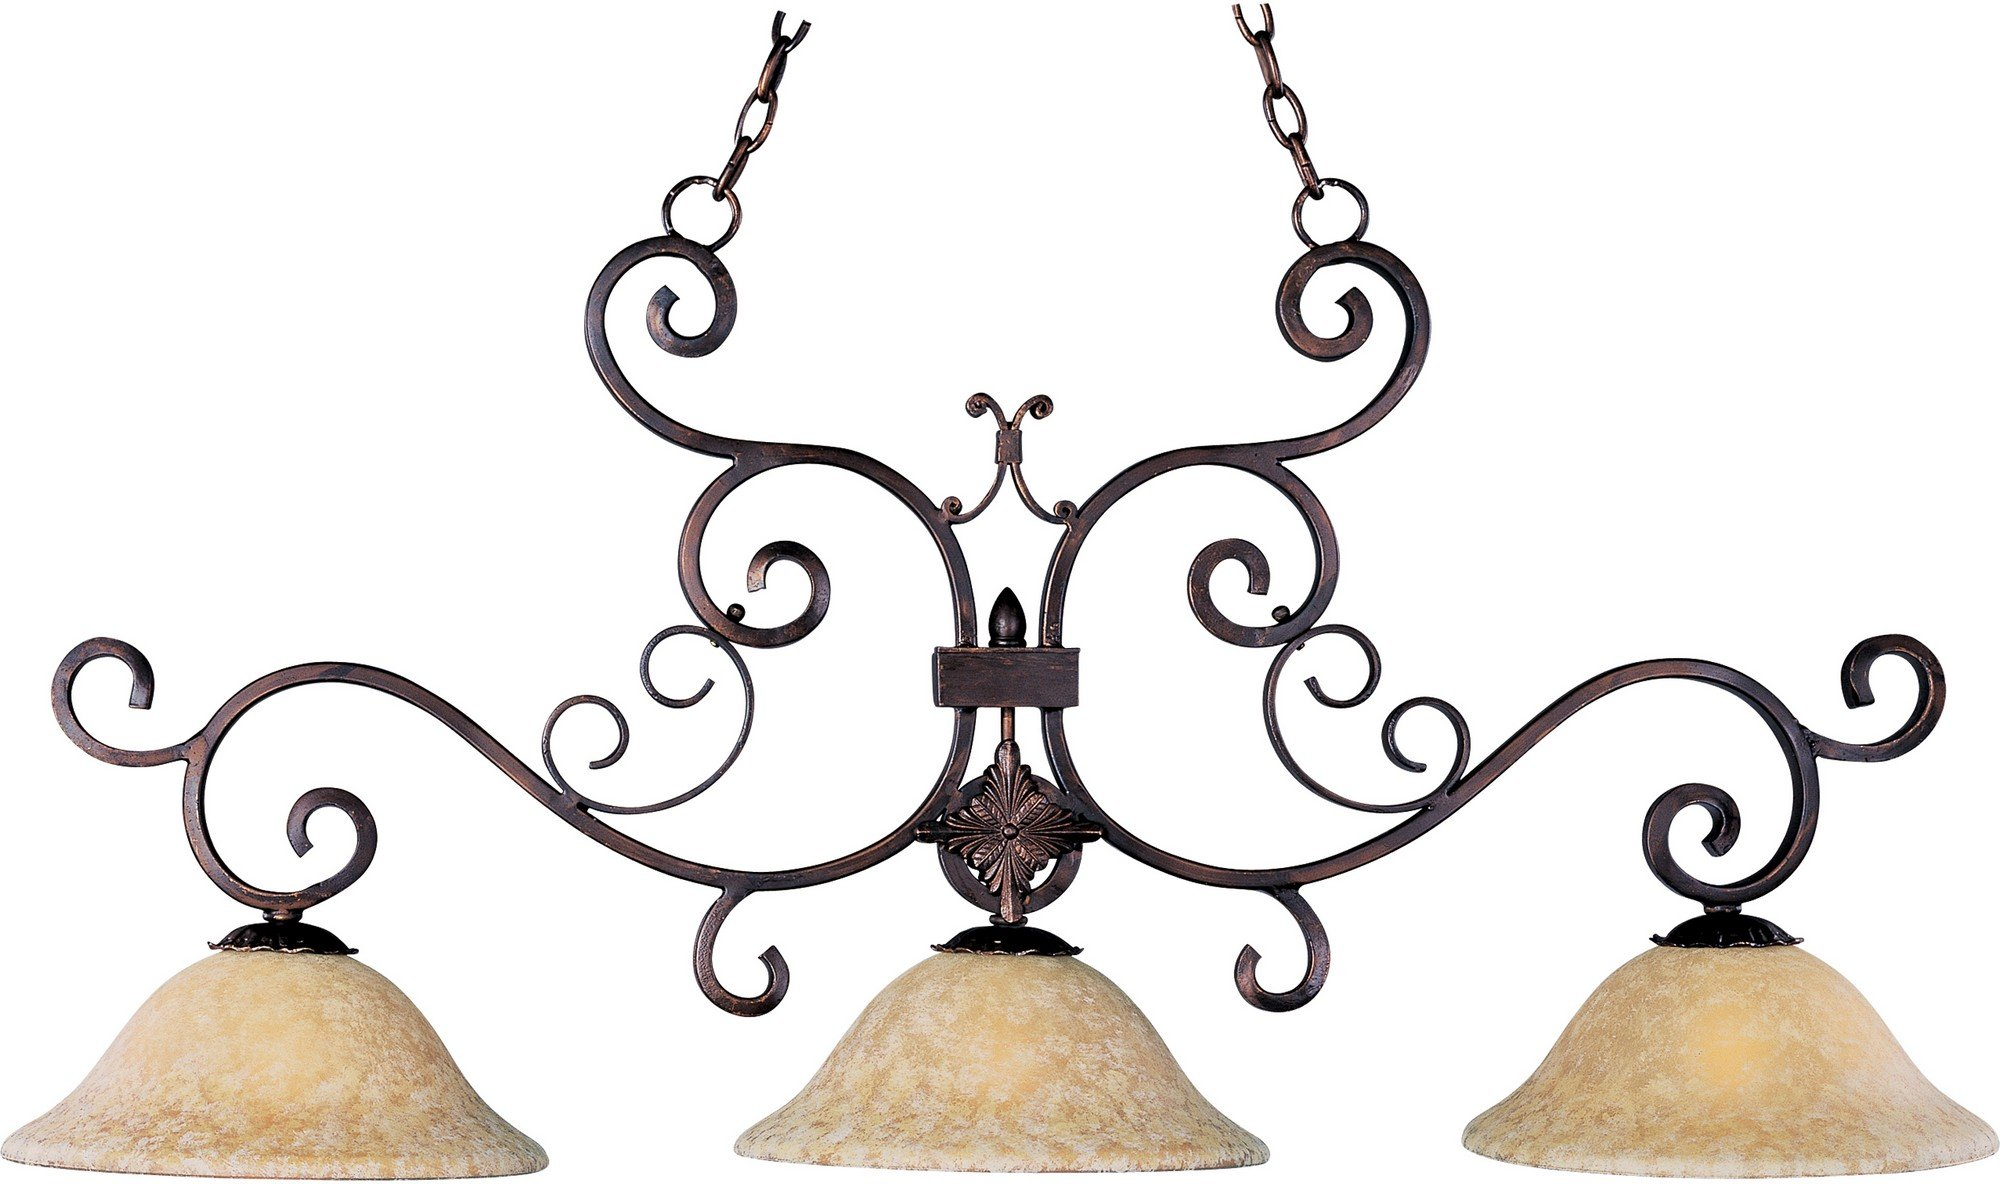 Maxim 20637VAOI Verona 3-Light Pendant, Oil Rubbed Bronze Finish, Vintage Amber Glass, MB Incandescent Bulb , 60W Max., Dry Safety Rating, Standard Dimmable, Glass Shade Material, 2688 Rated Lumens